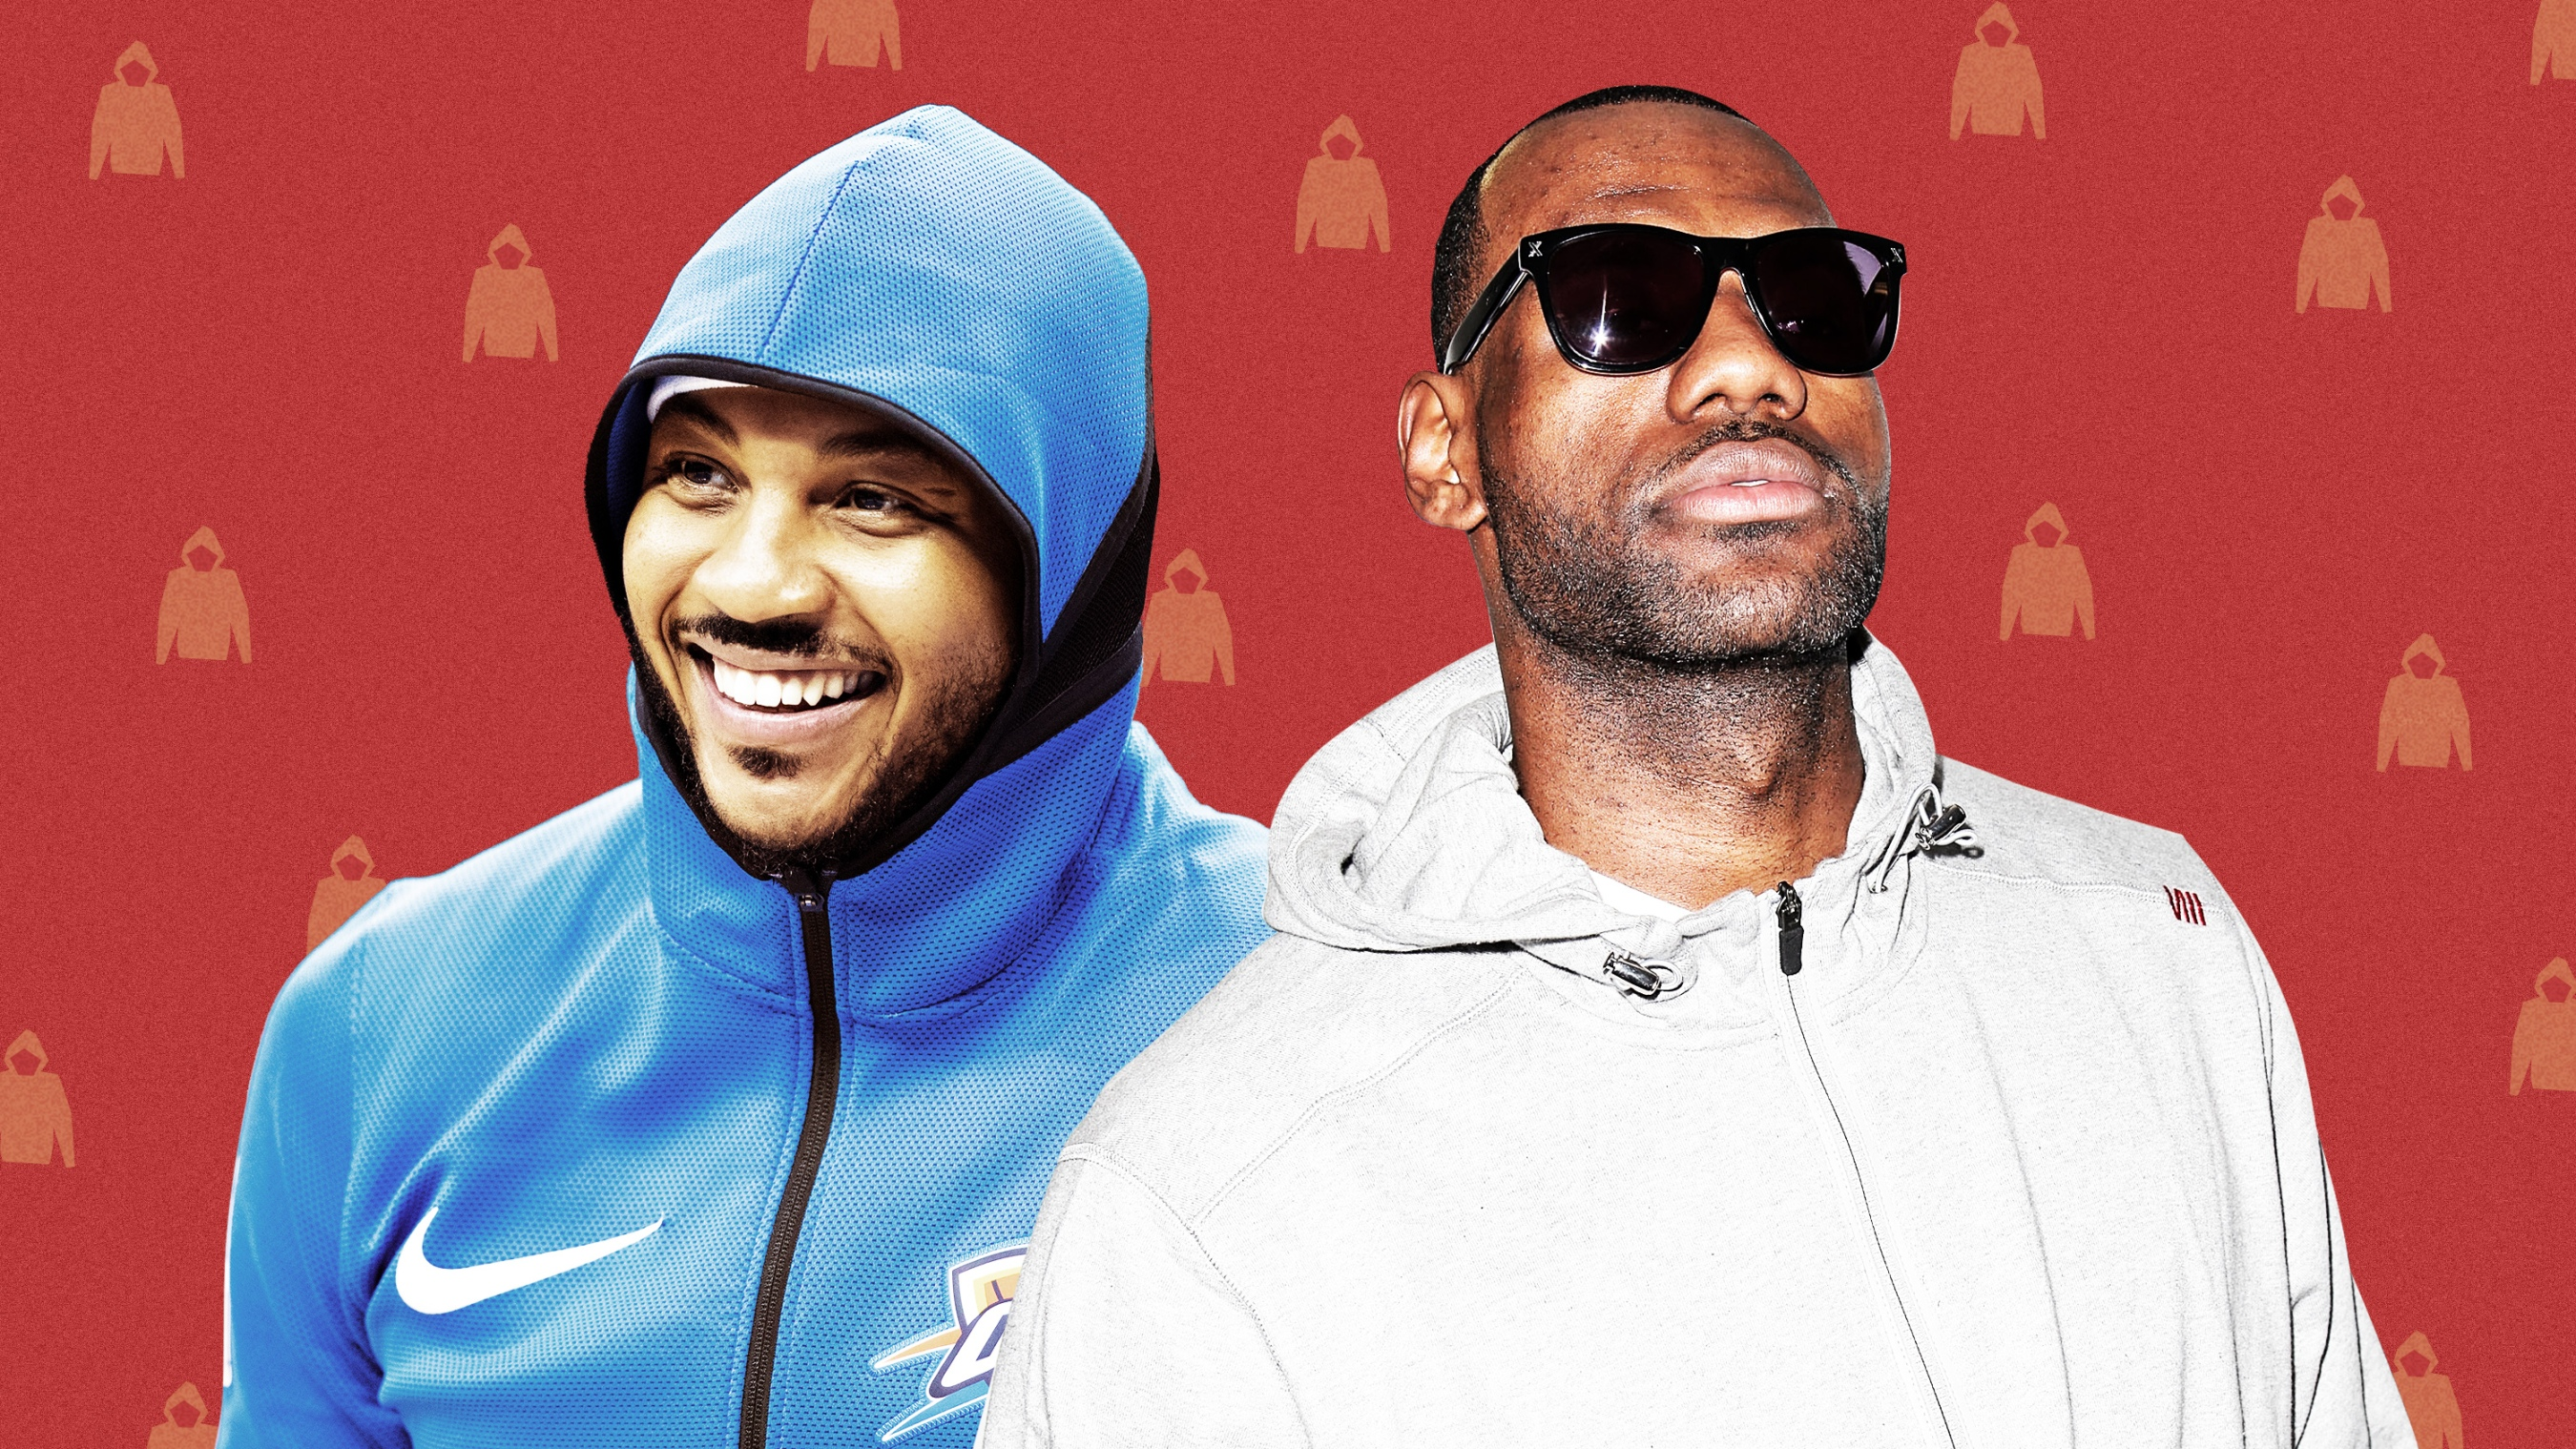 e22412d49c89c LeBron and his Cavs.  HoodieMelo. Beyoncé. How we successfully reclaimed  the hoodie.